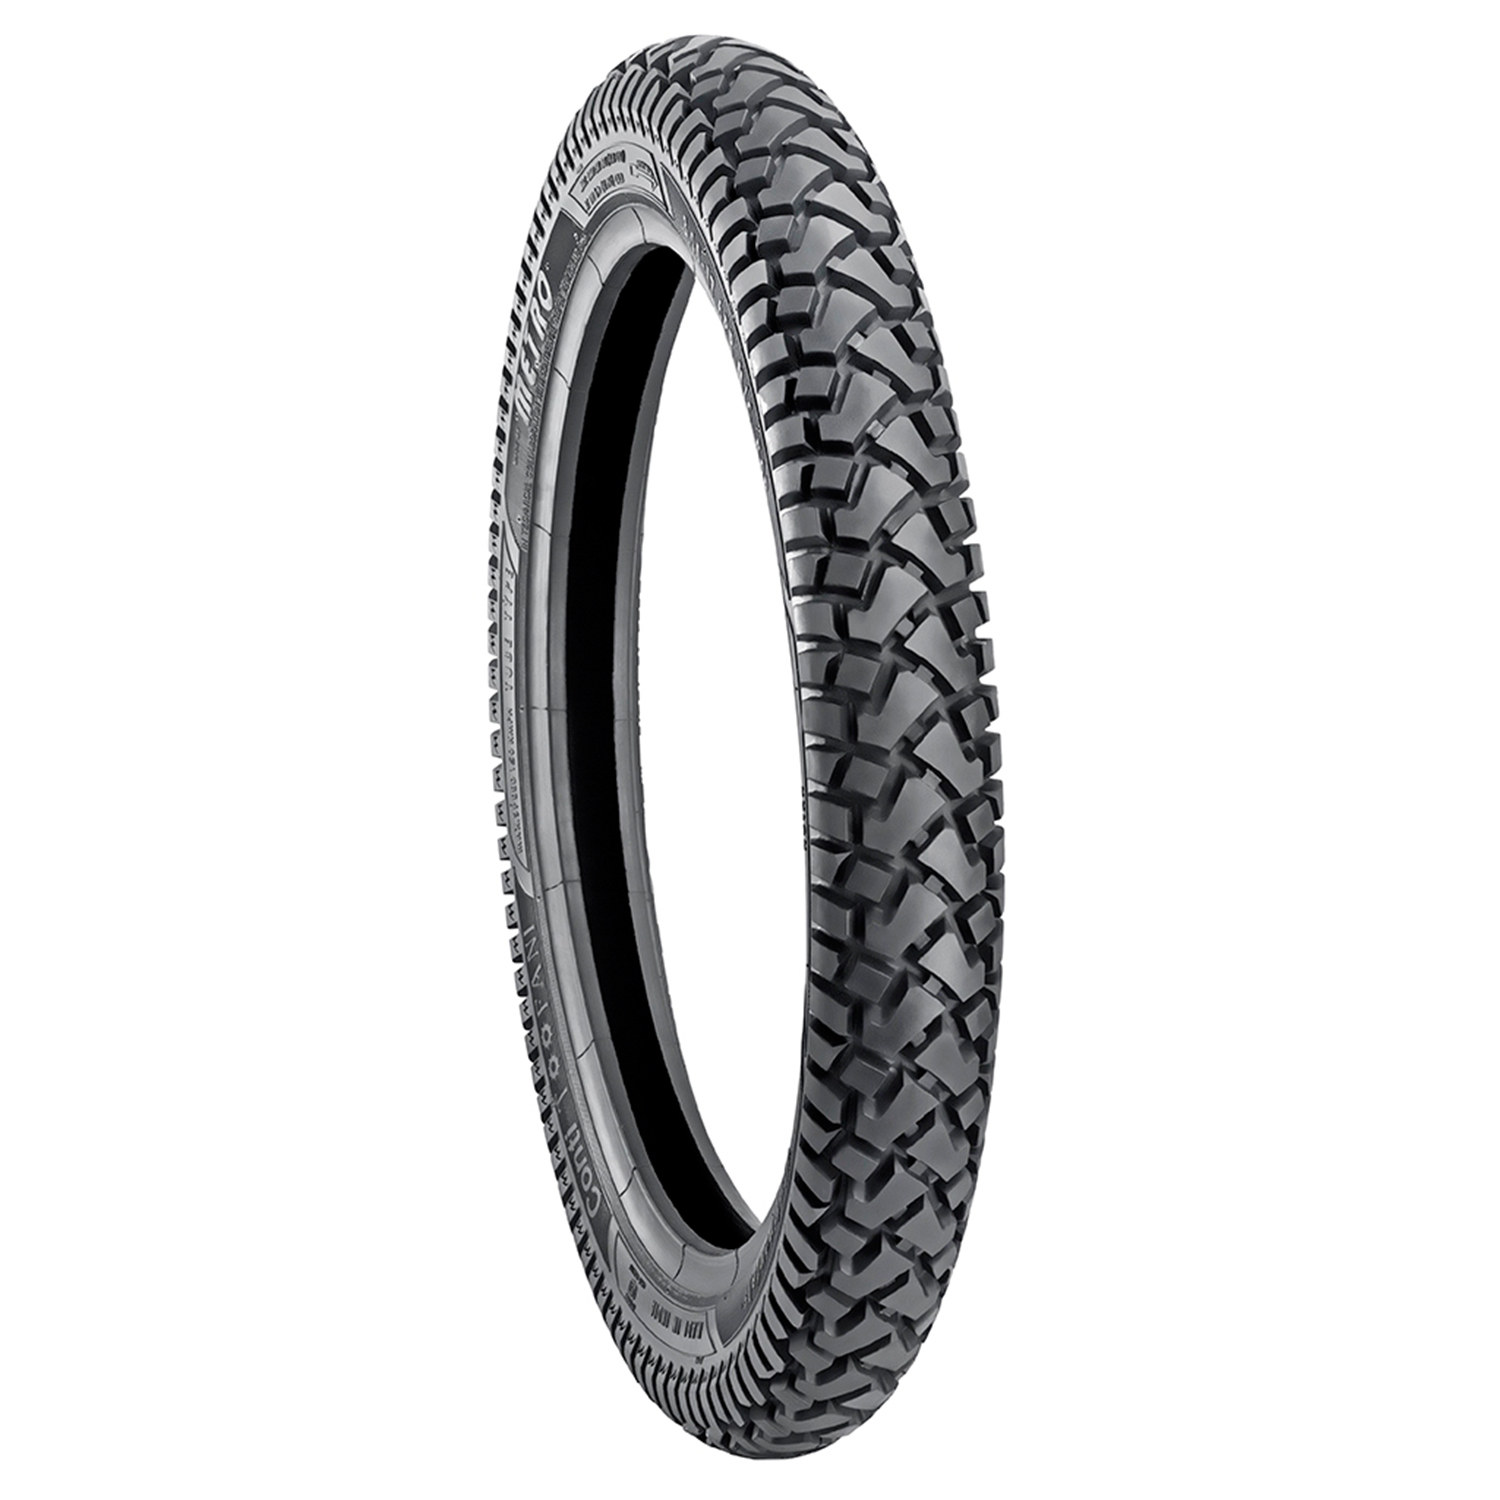 Metro CONTI TOOFANI 3.00 18 Rear Two-Wheeler Tyre